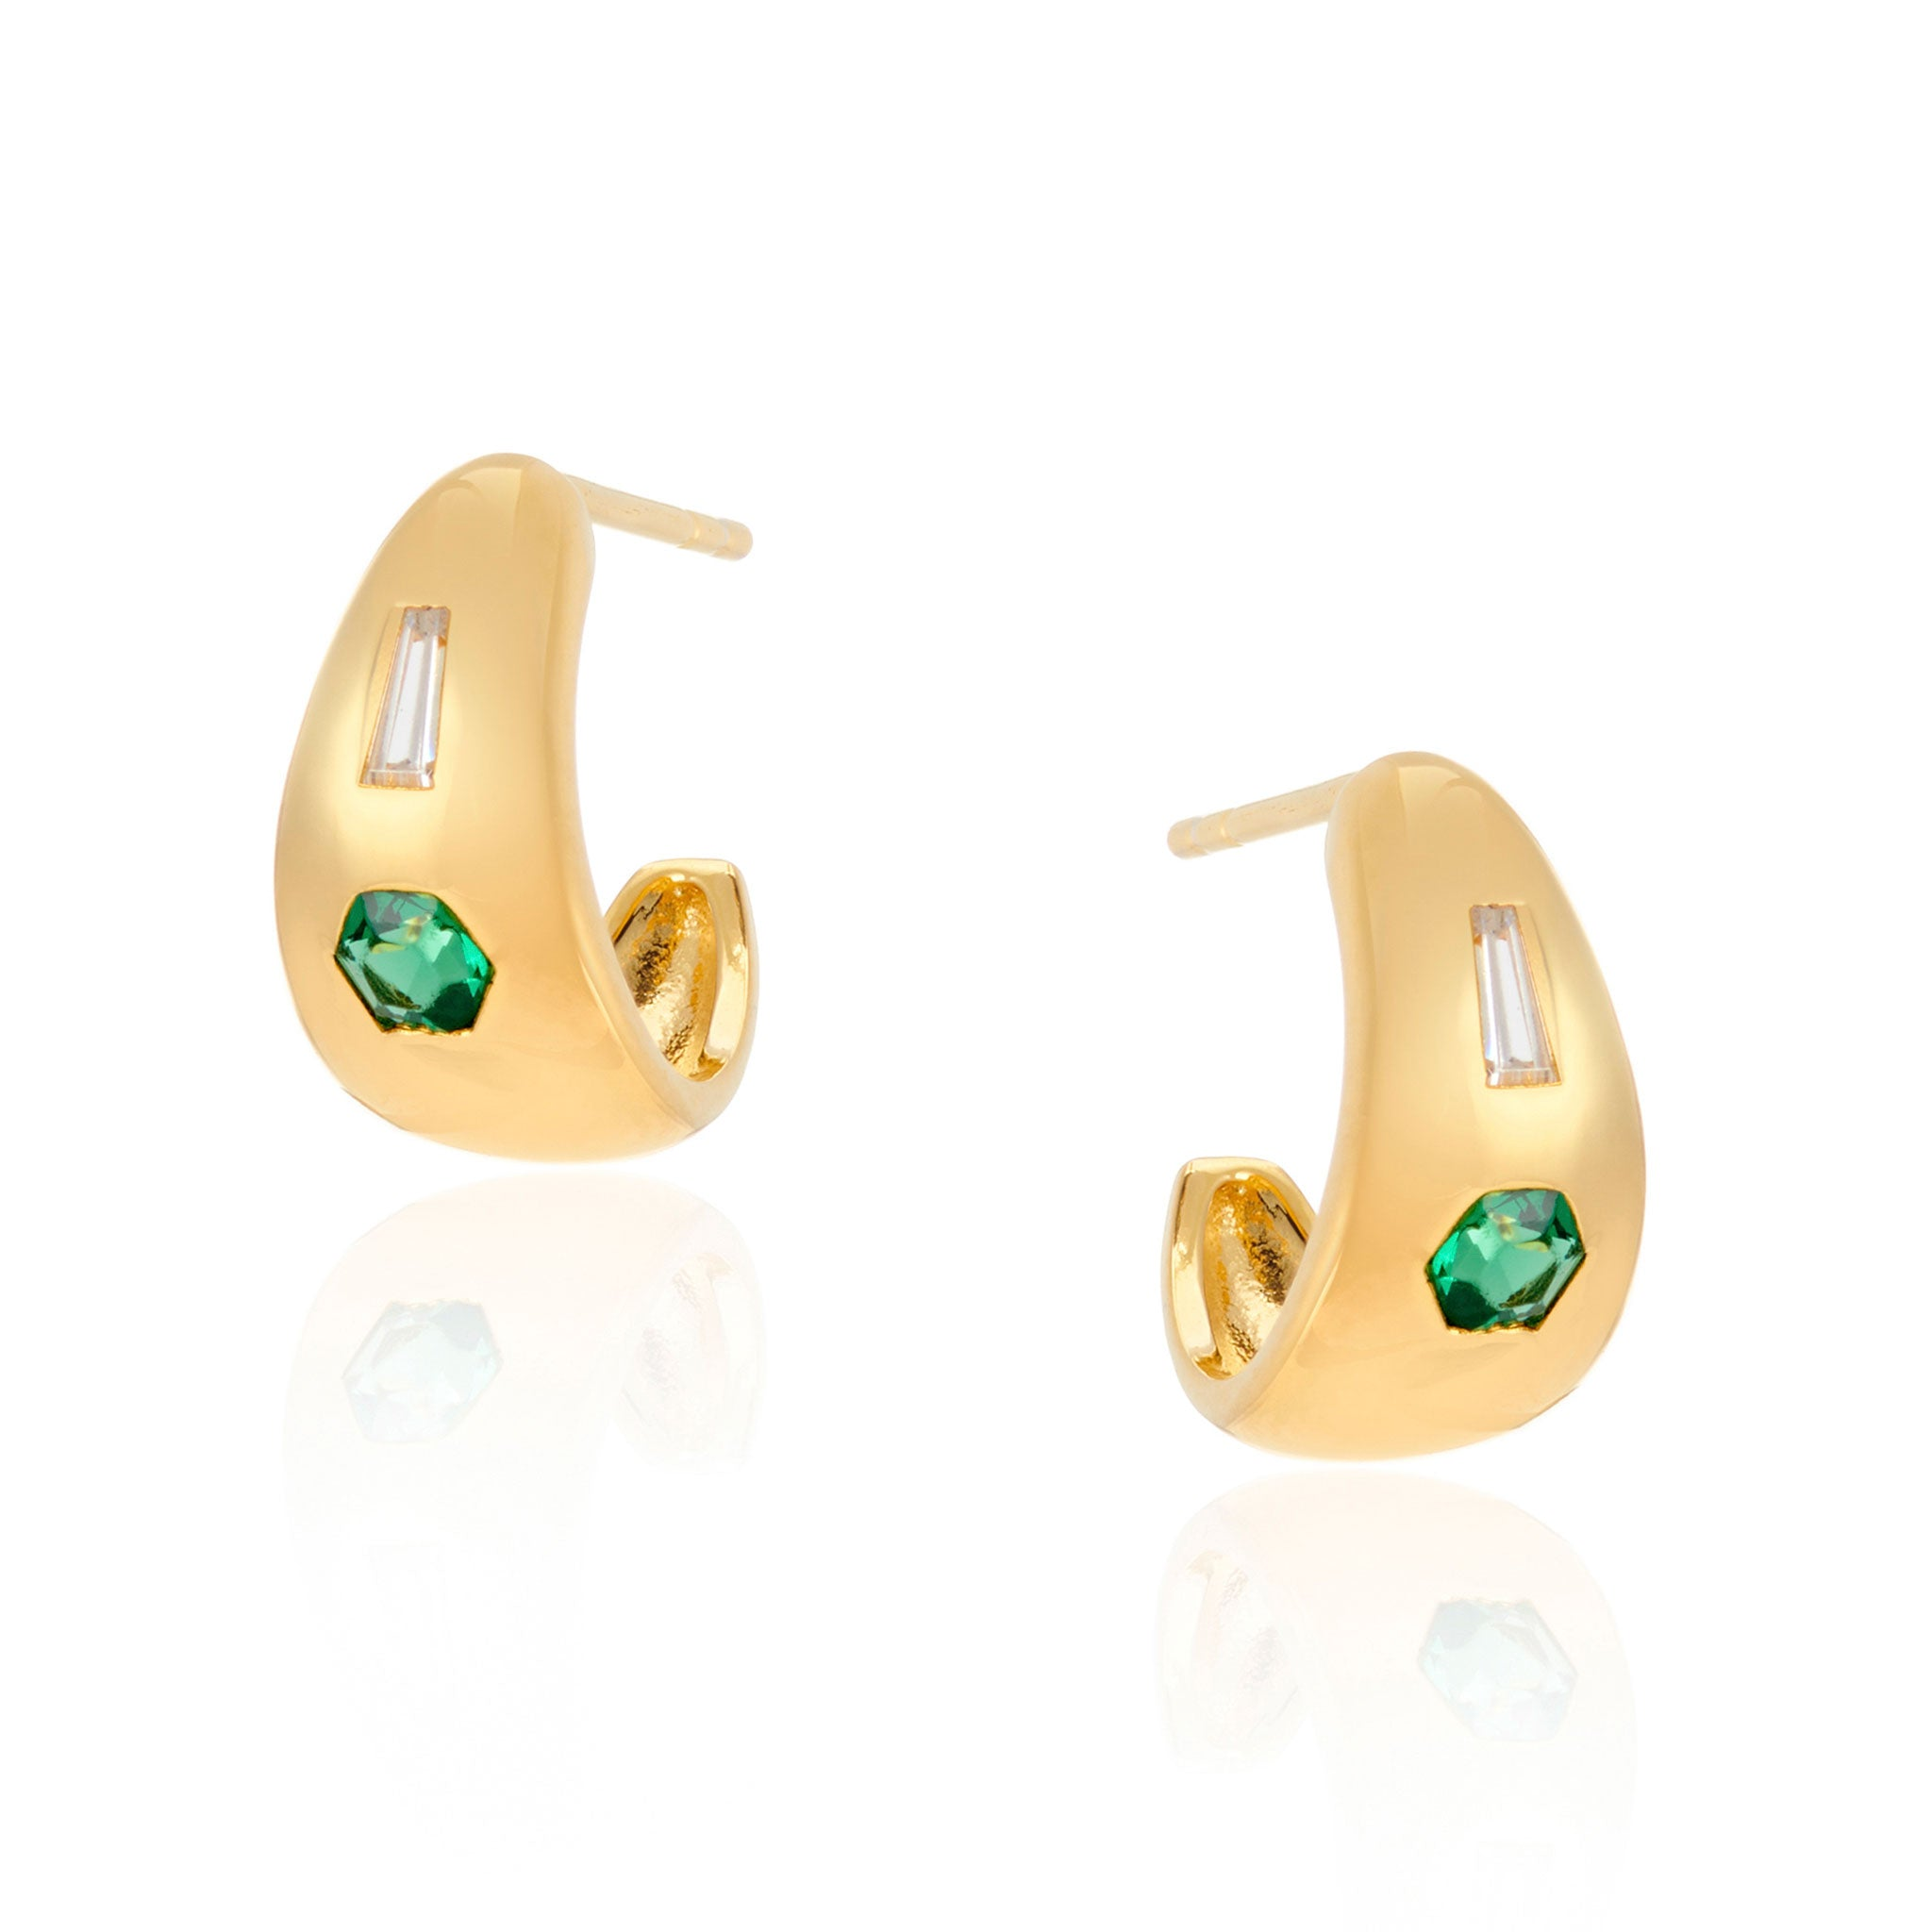 Jada Small Chubby Green Stone Hoop Earrings